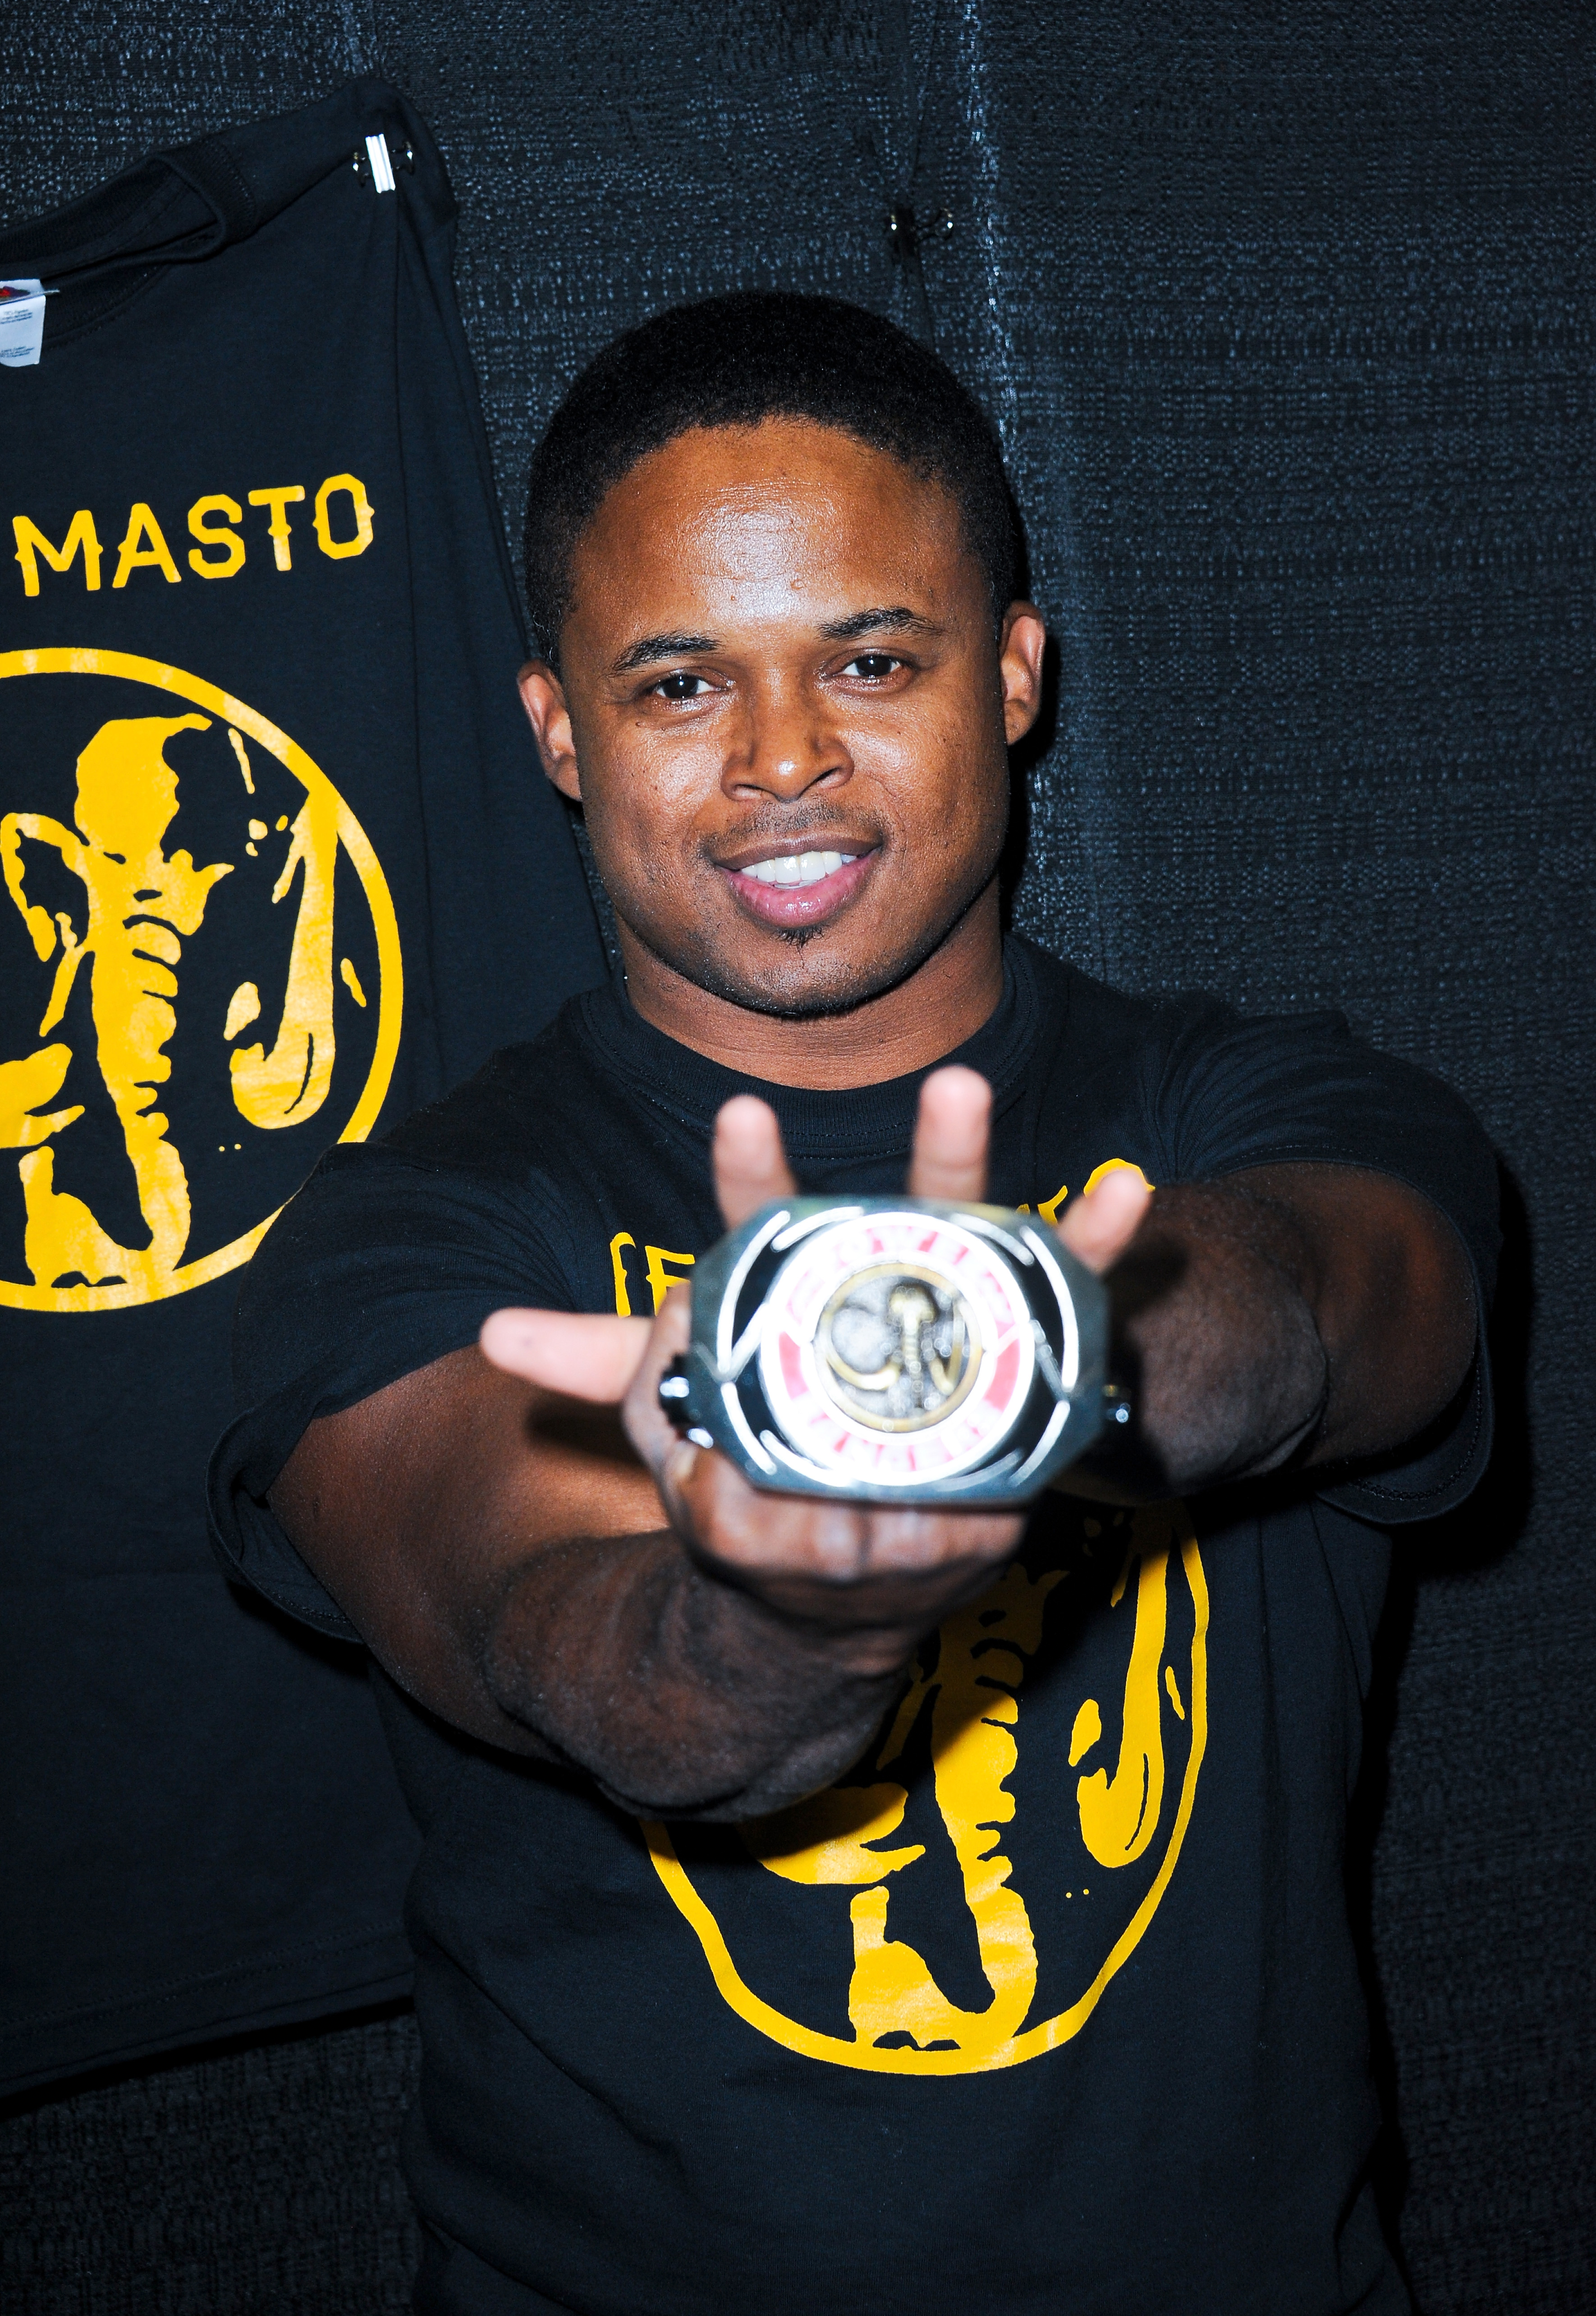 Actor Walter Jones attends the Third Annual Stan Lee's Comikaze Expo held  at the Los Angeles Convention Center on Nov. 1, 2014, in Los Angeles.